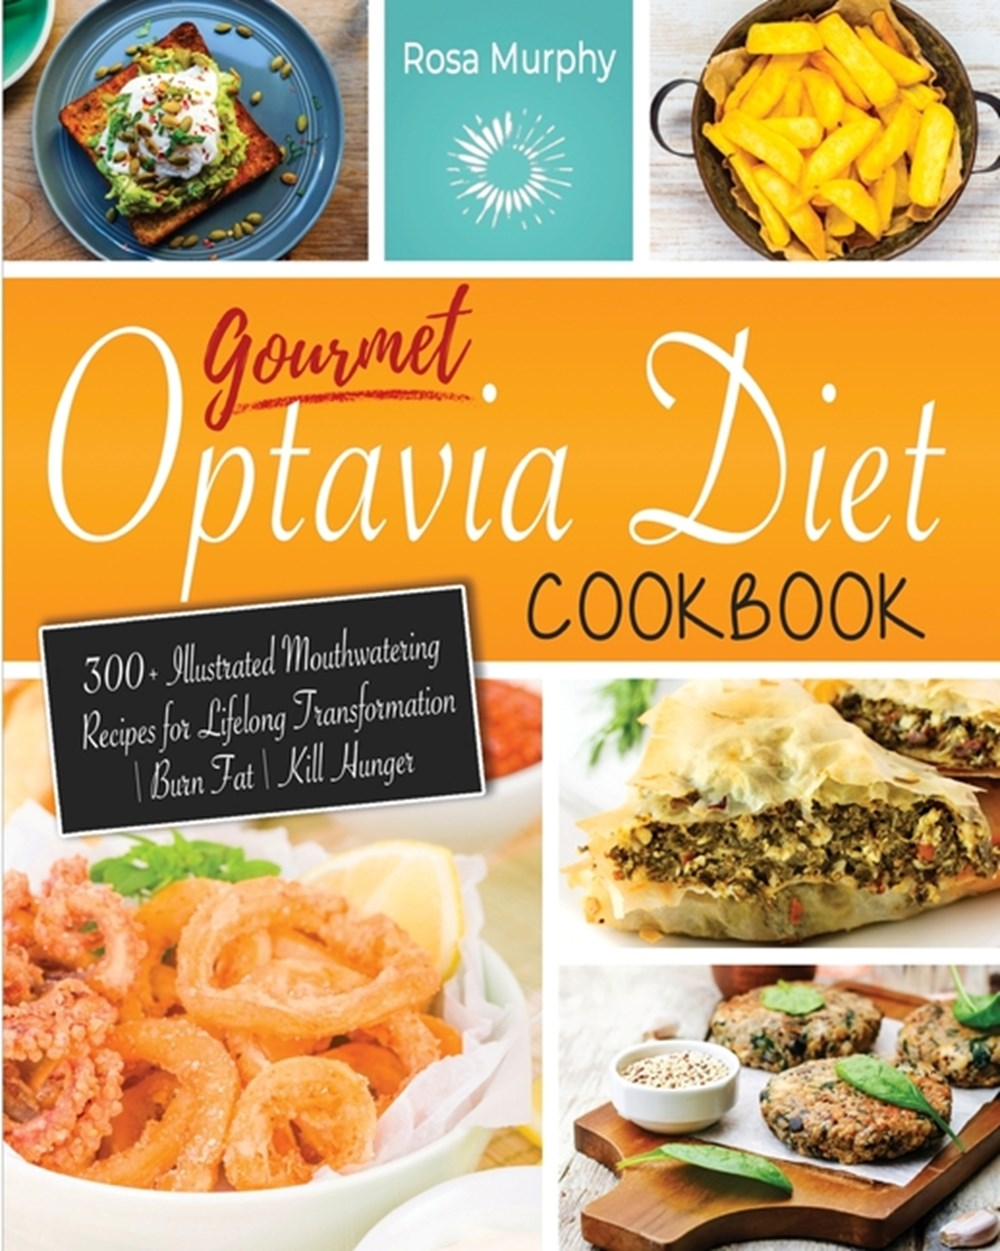 Gourmet Optavia Diet Cookbook 300+ Illustrated Mouthwatering Recipes for Lifelong Transformation - B